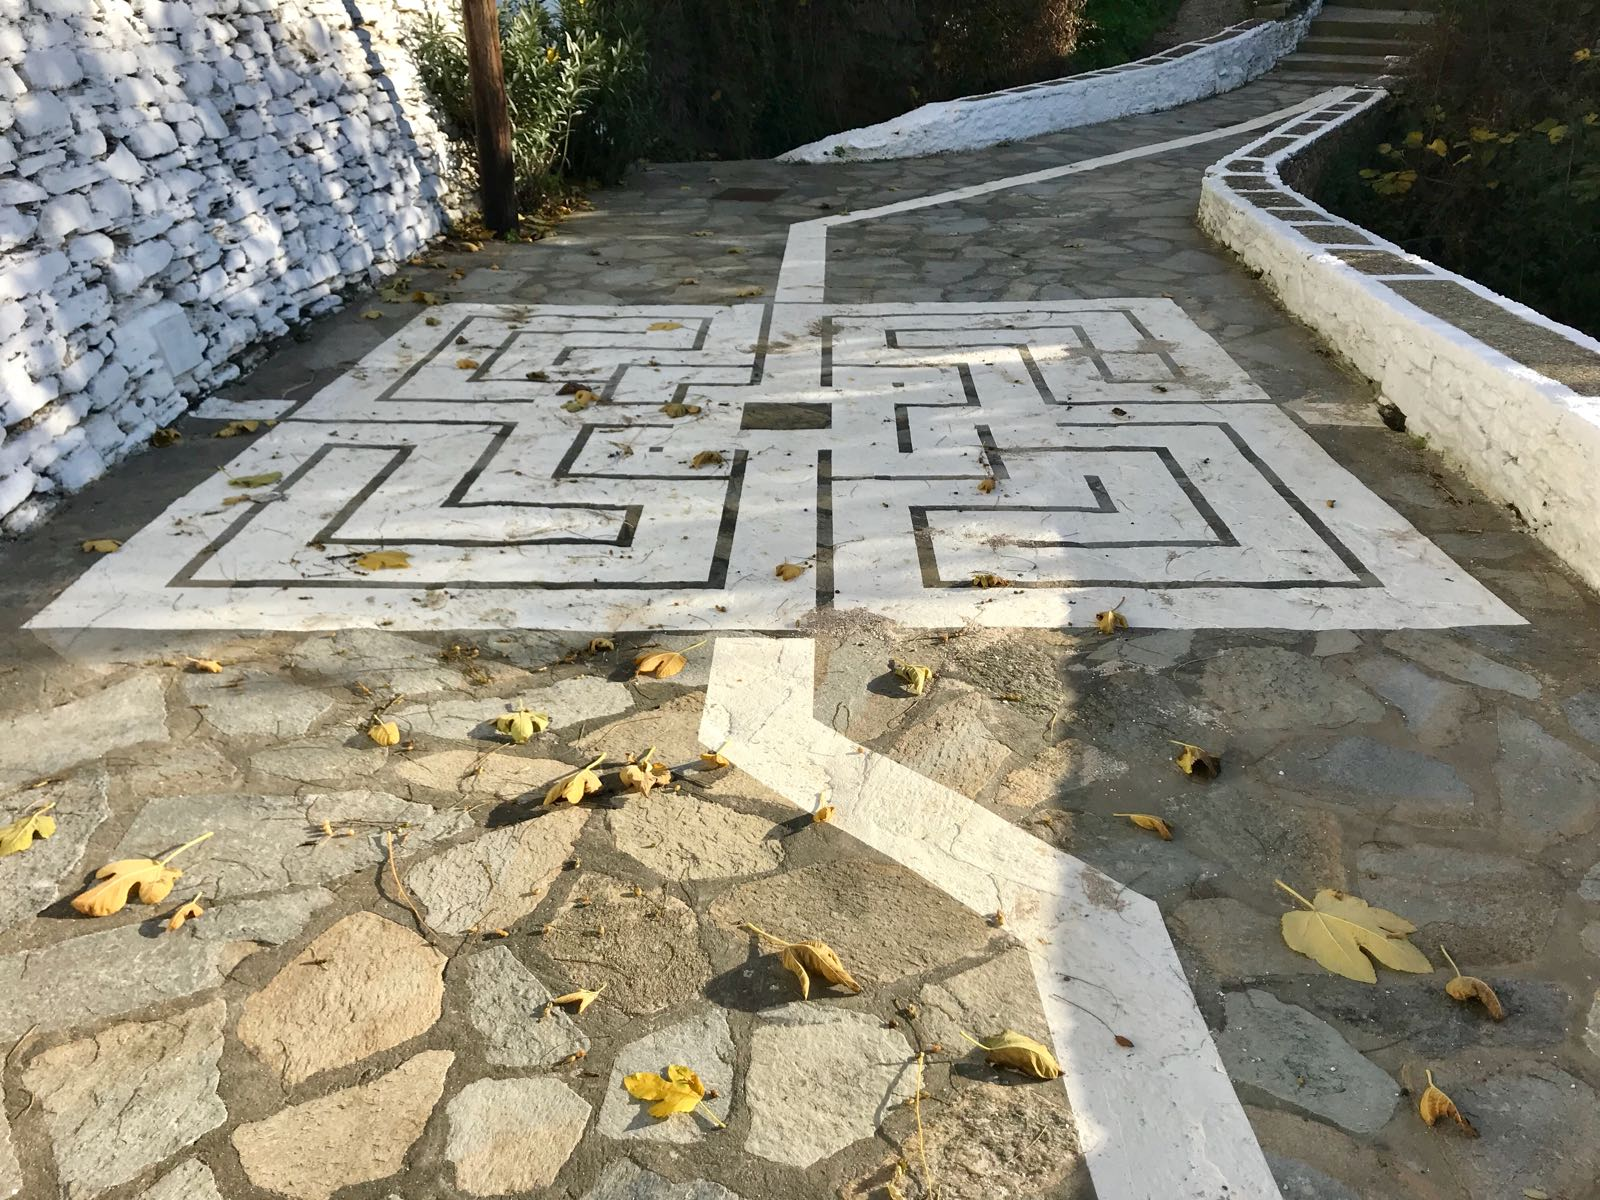 Maze on a pathway made from tiling